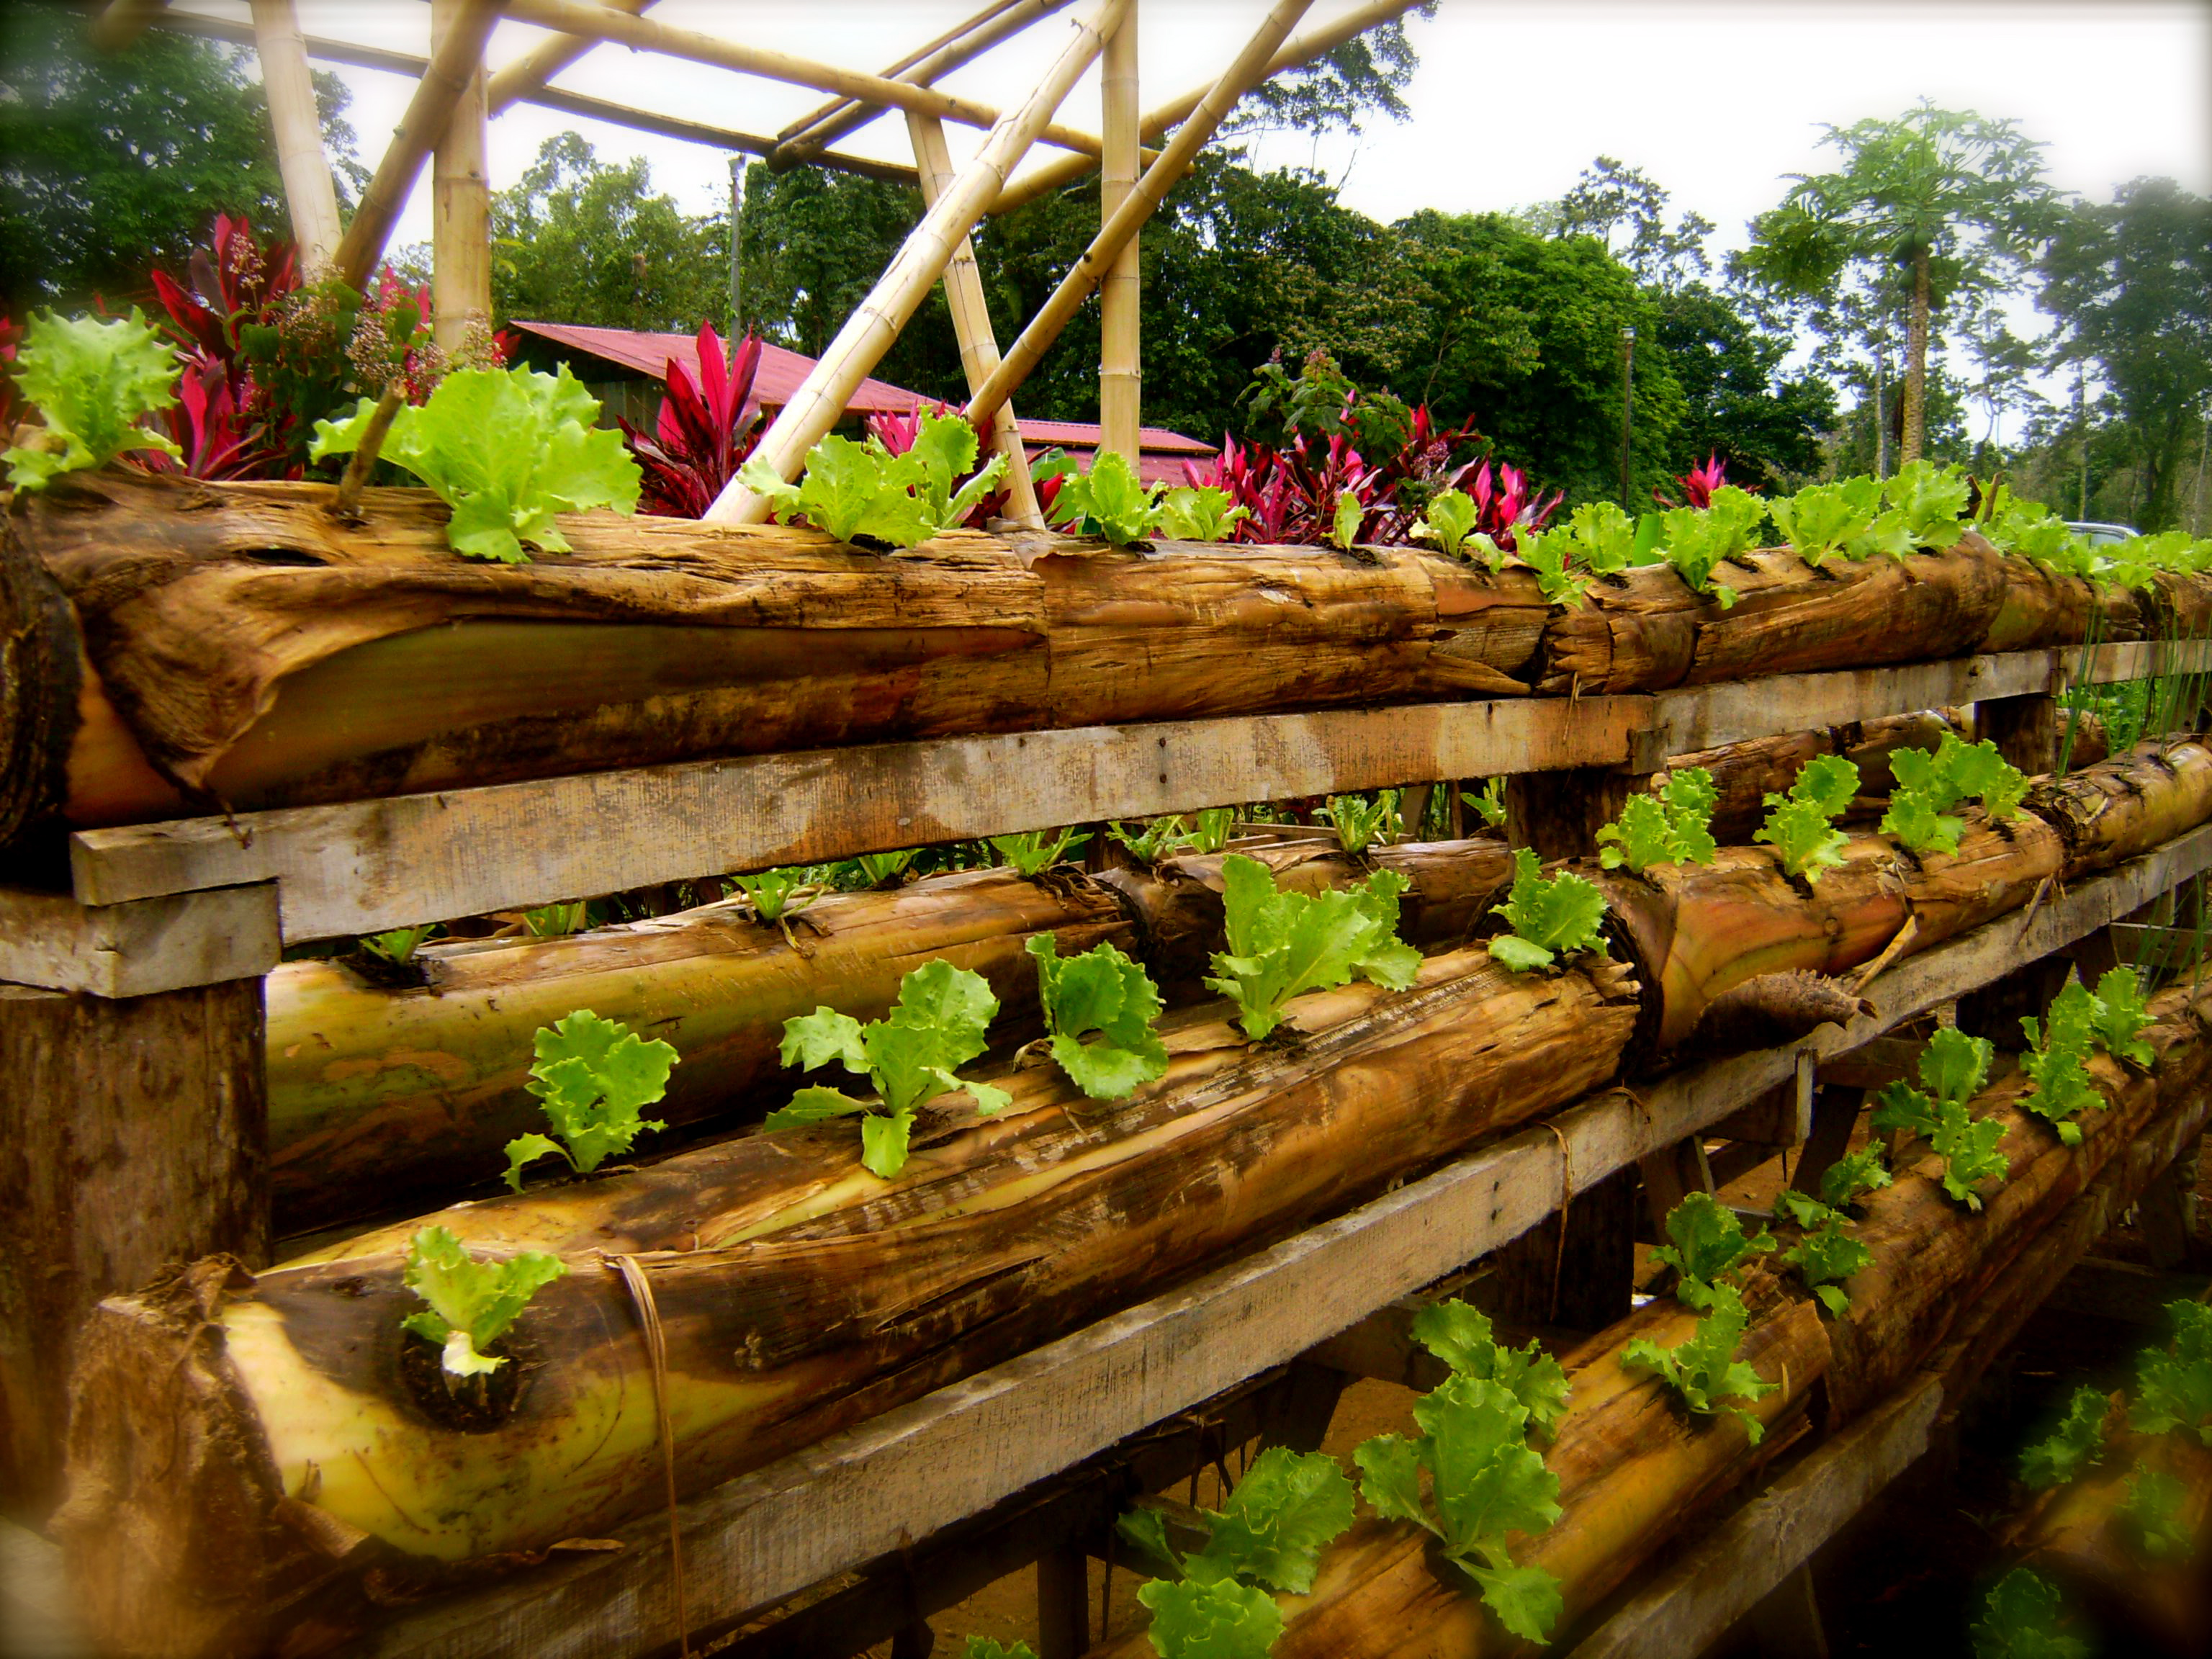 diyhydroponic: Hydroponics With Bamboo